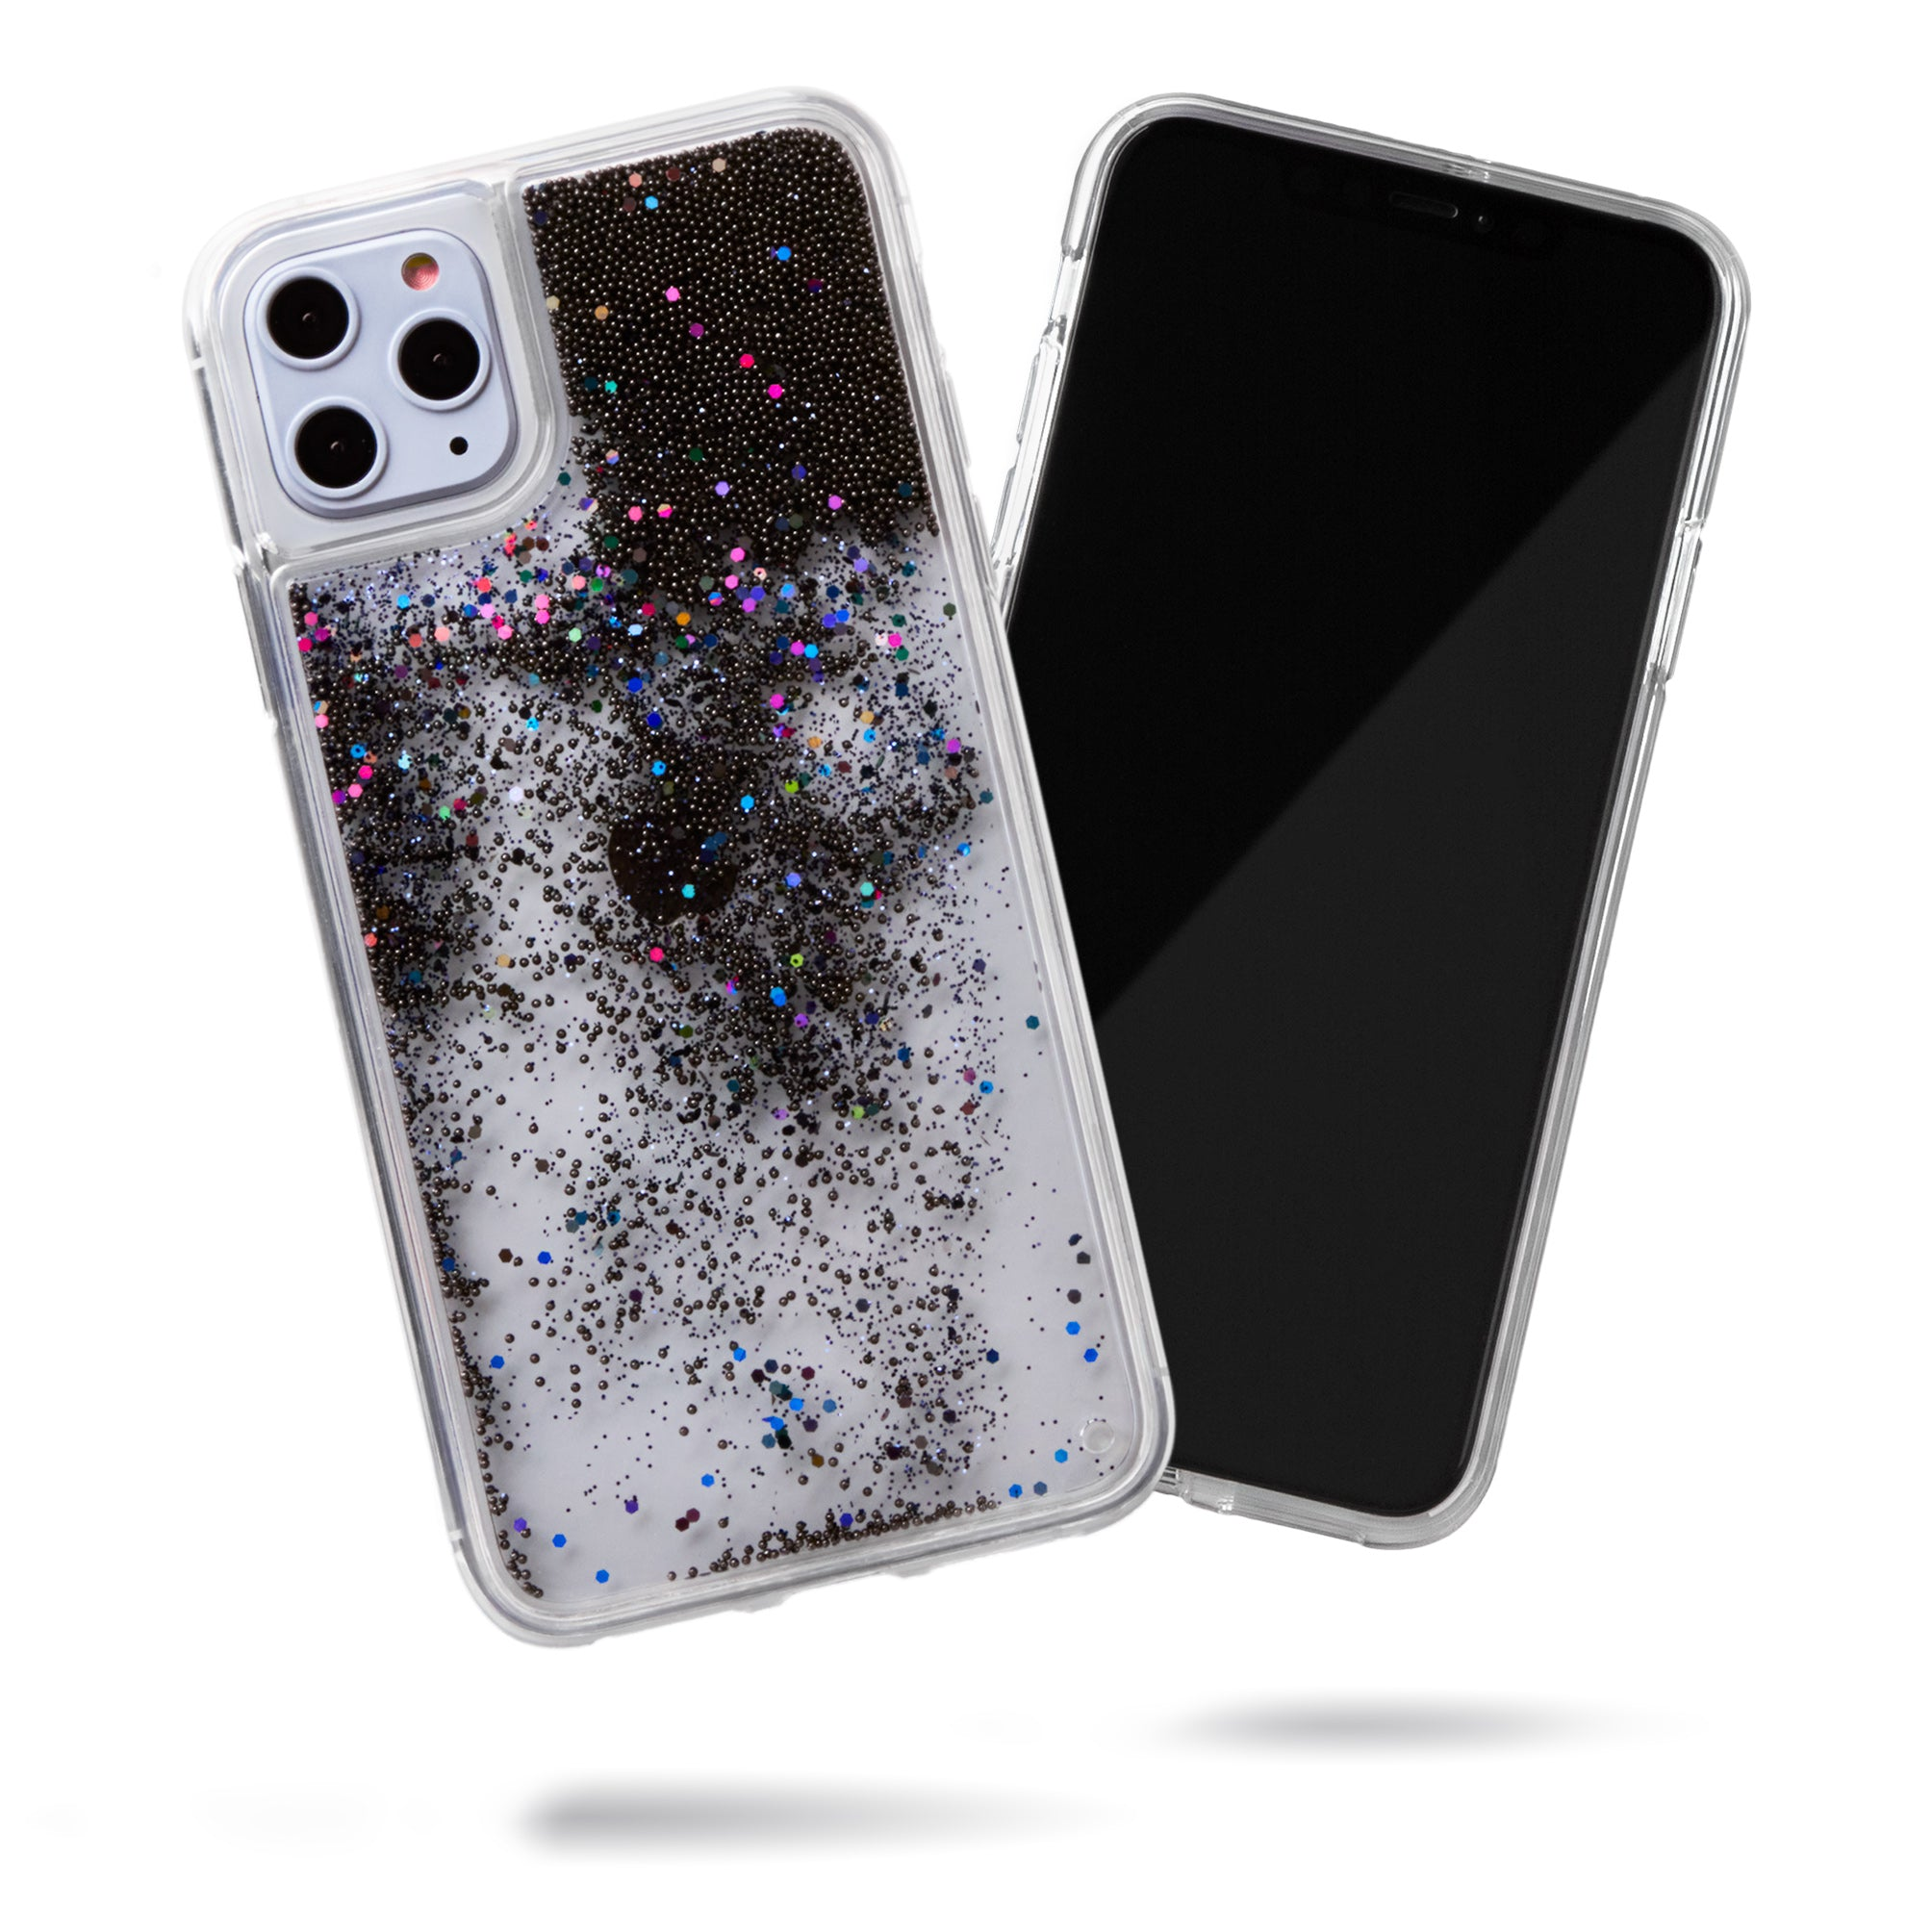 Glitter Liquid Case for iPhone 11 Pro Max - Black Pearls w/ Iridescent Glitter